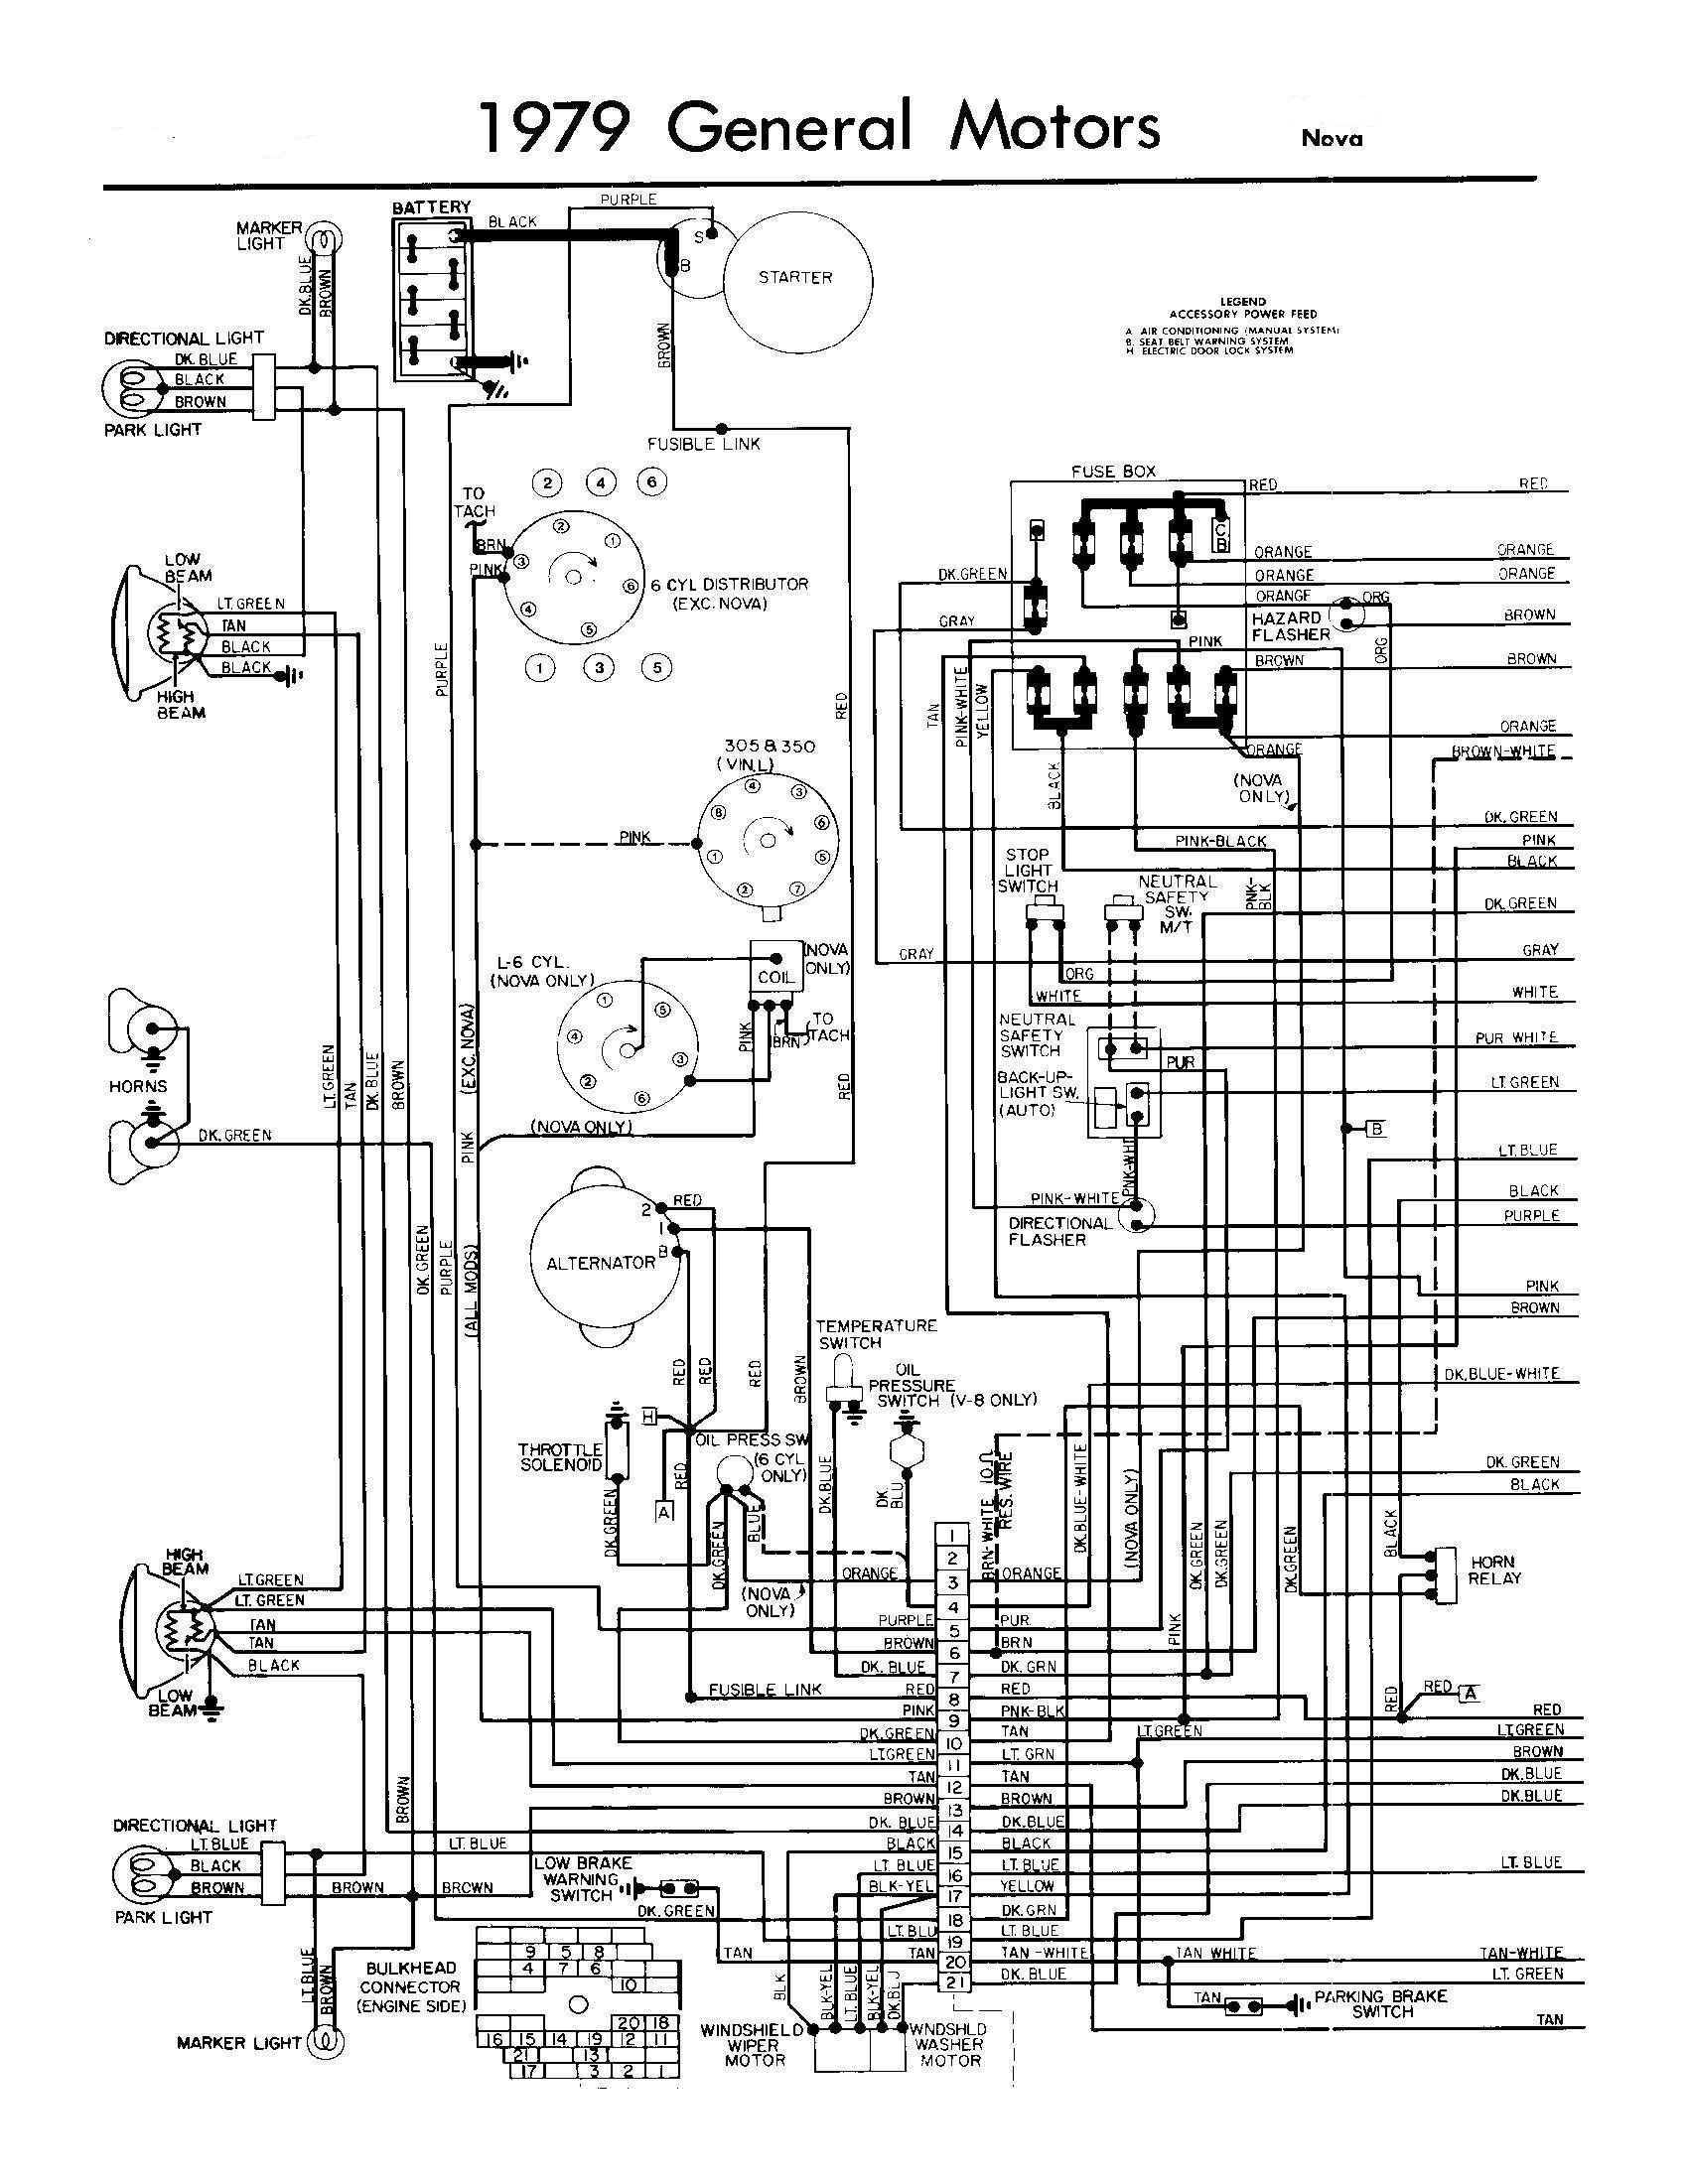 1972 k10 wiring diagram wiring diagram library u2022 rh wiringhero today 1978 Chevy Truck Wiring Diagram 82 Chevy Truck Wiring Diagram